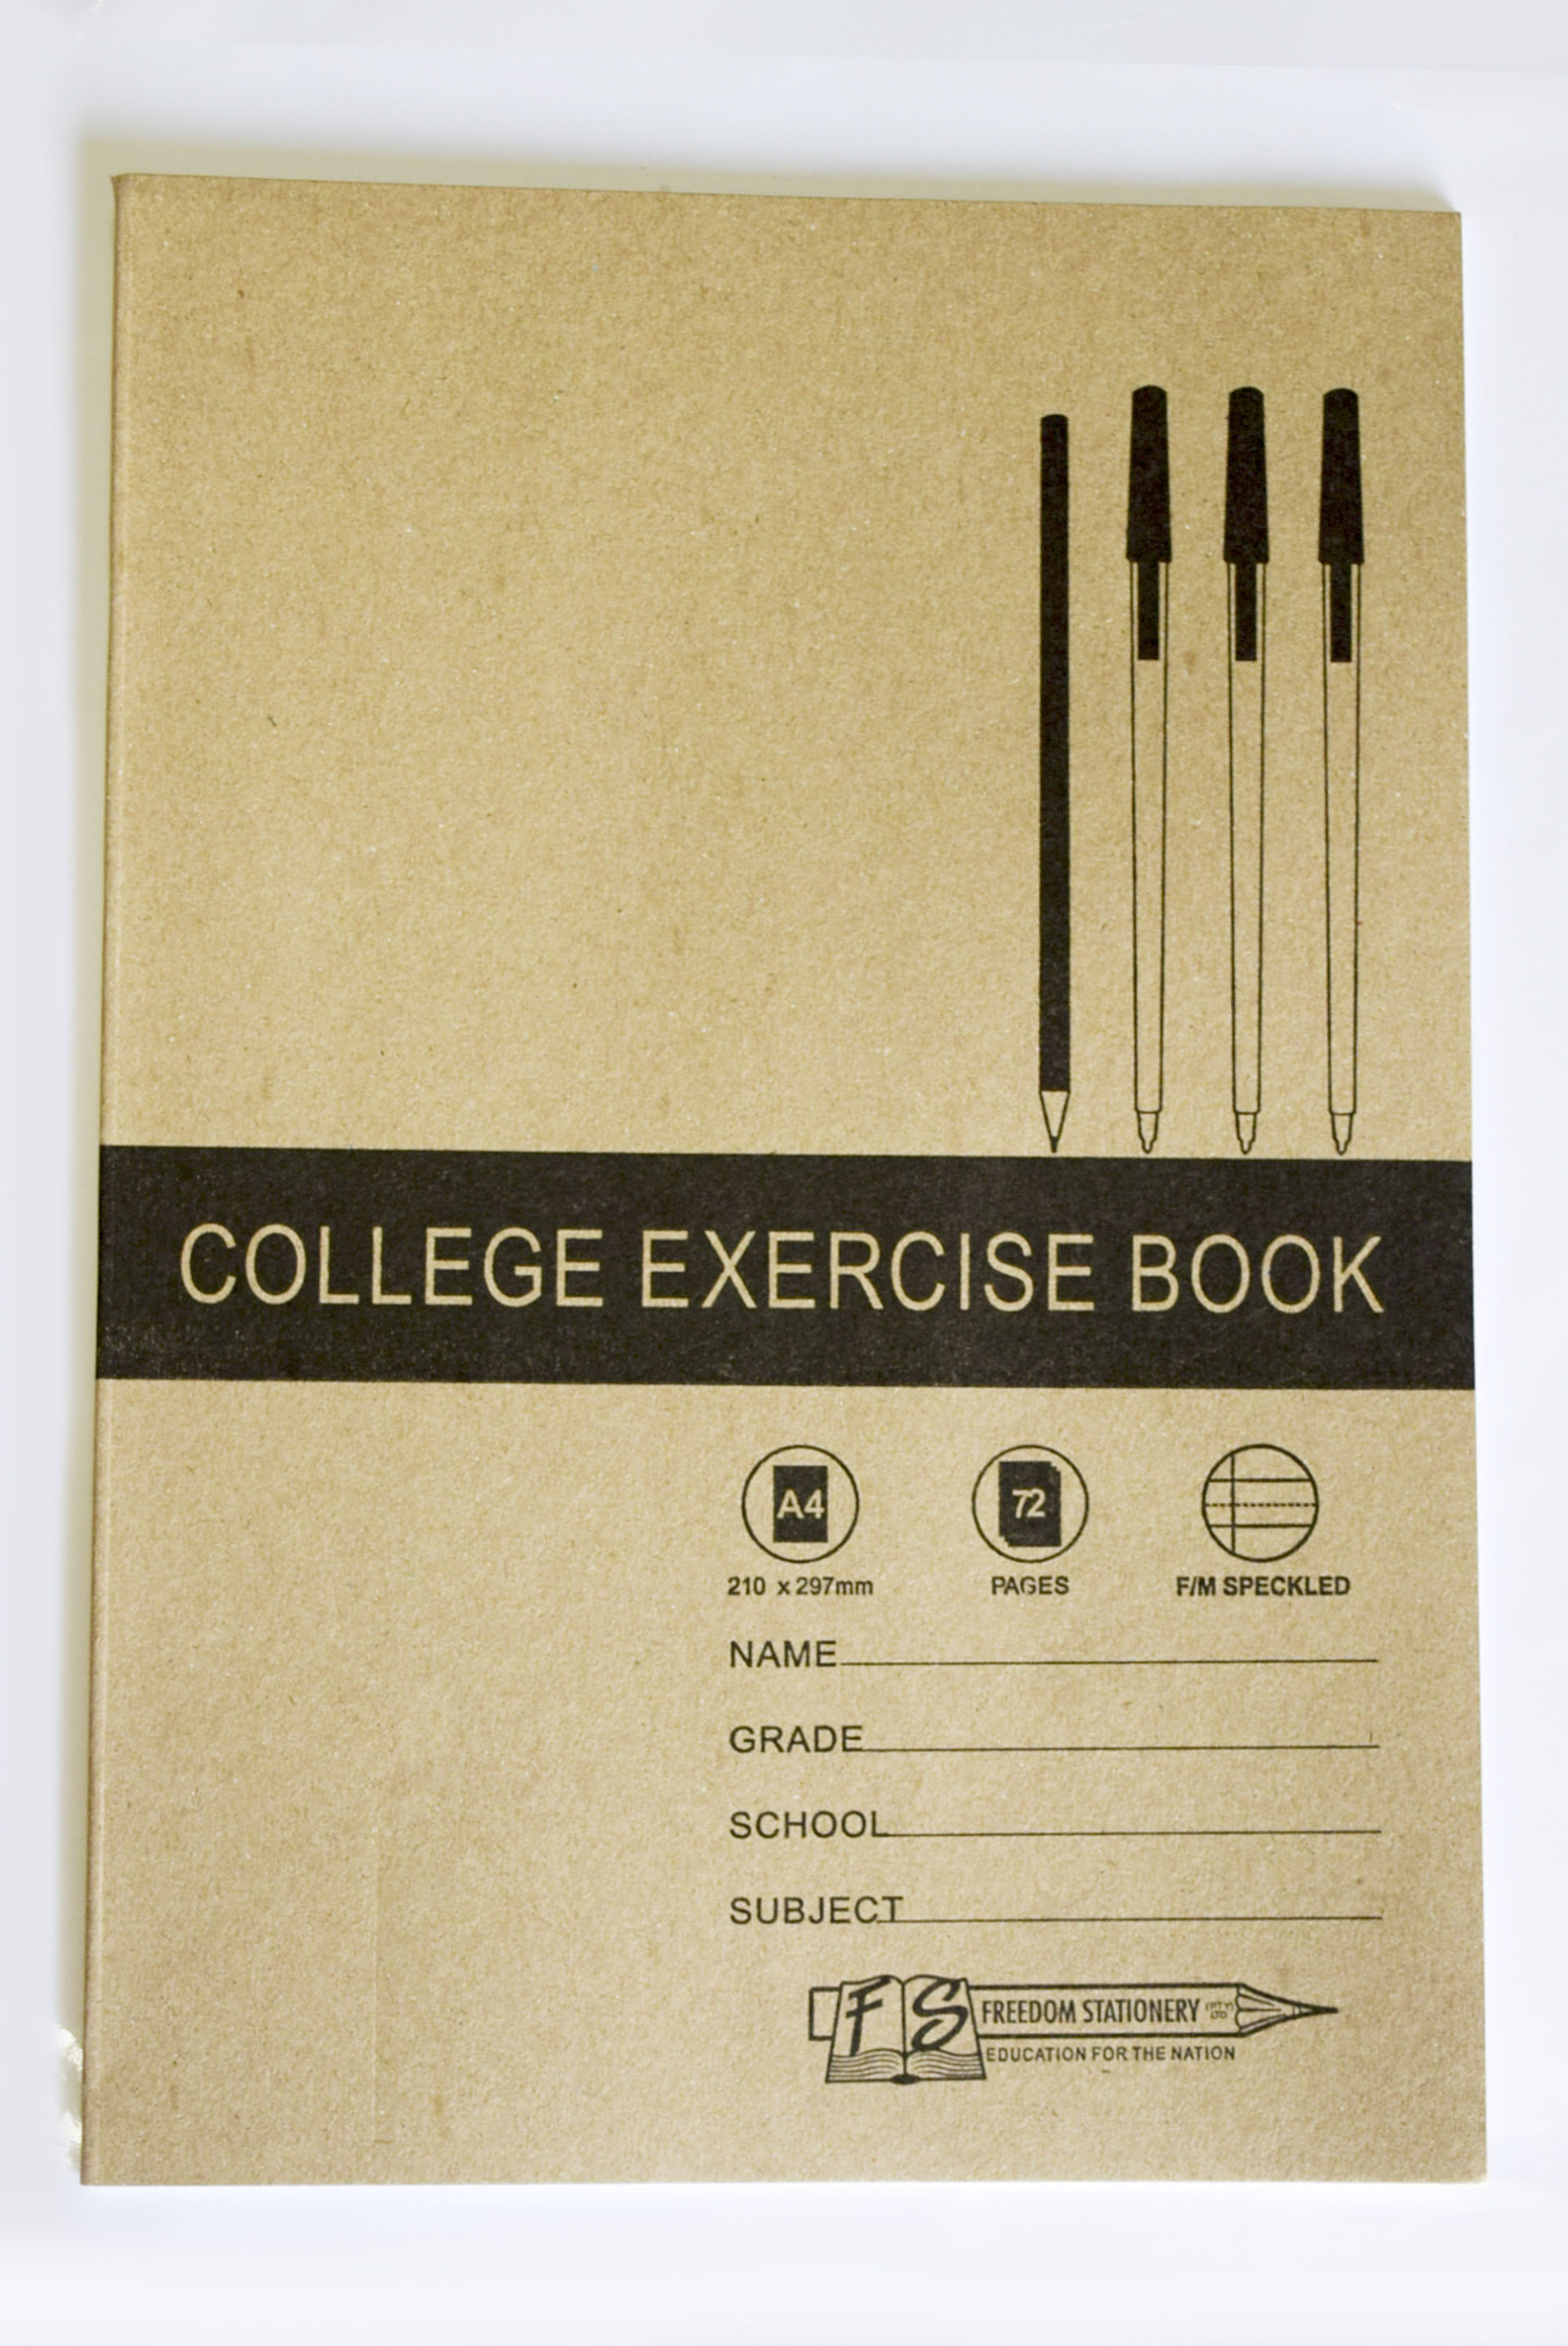 Buy a Ton! A4 Feint and Margined 72 Page Speckled Exercise Books with a Soft Cover (2092) 1